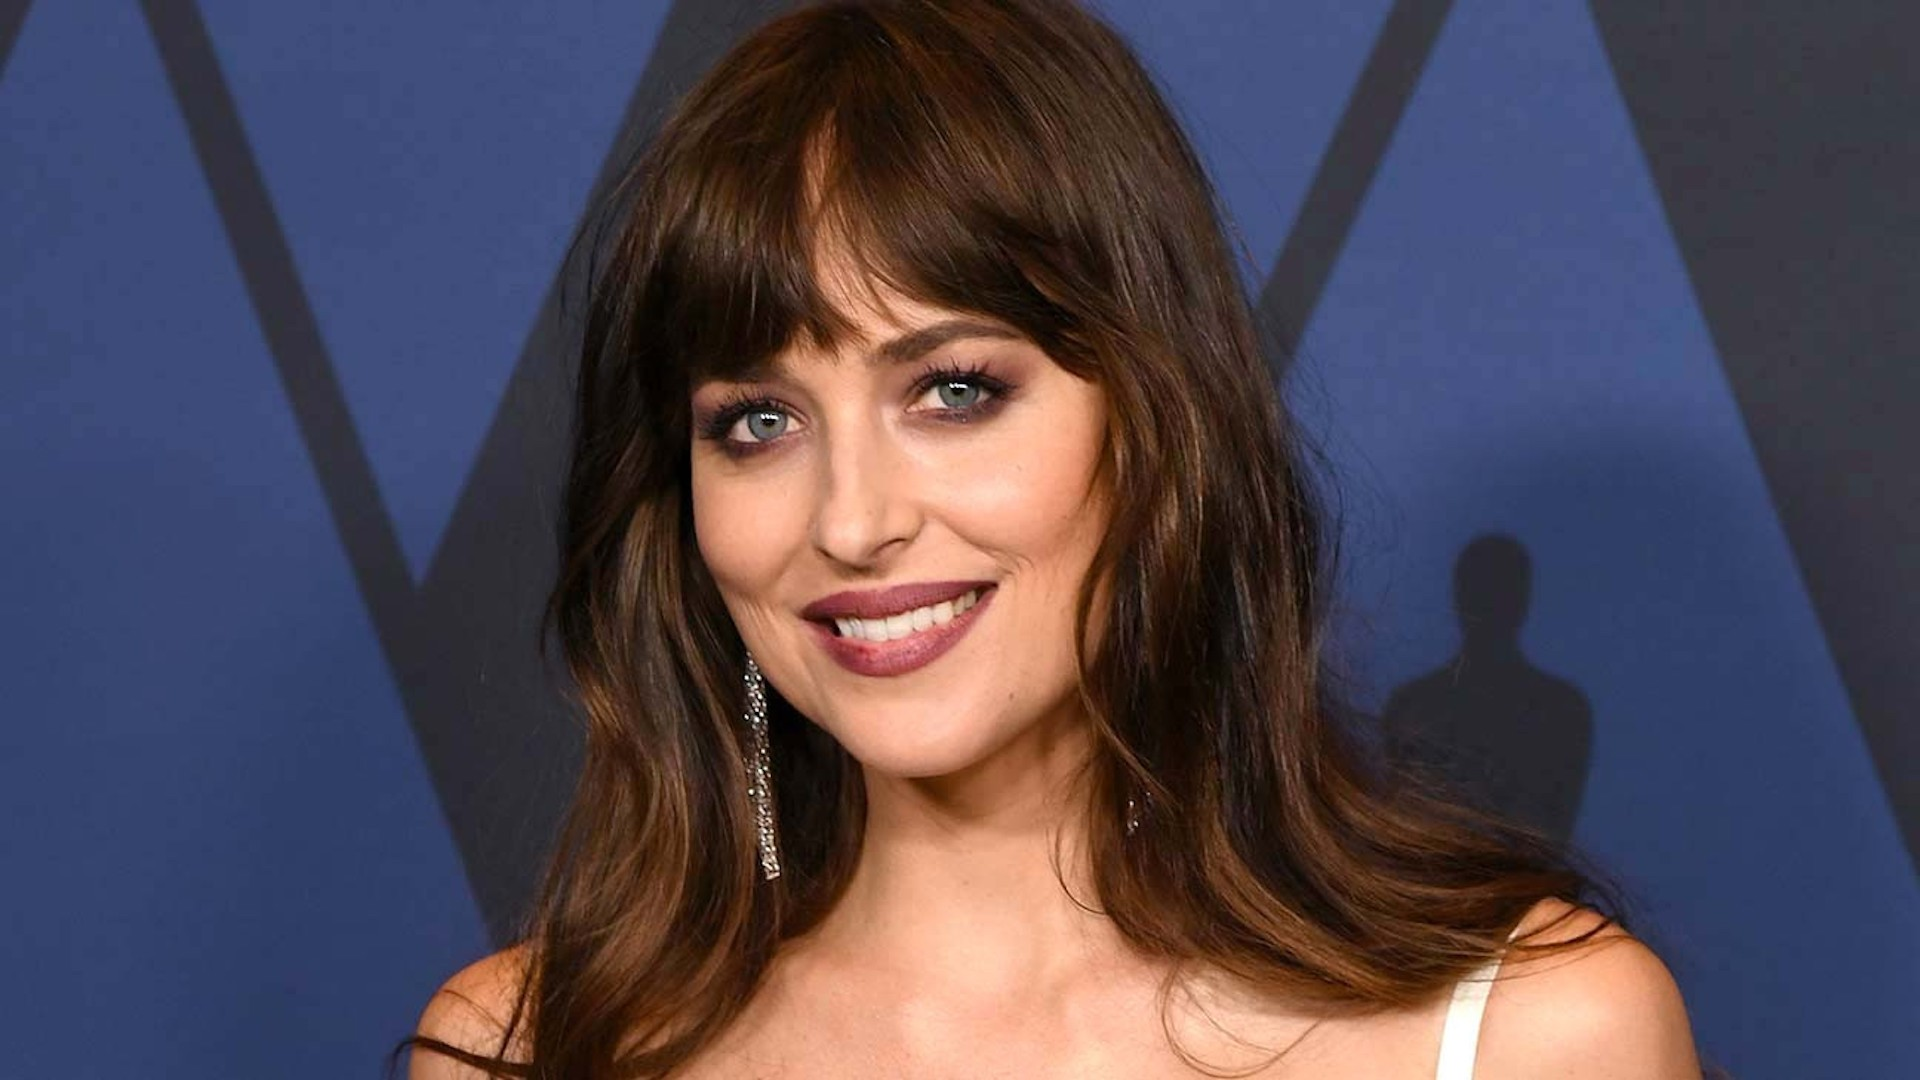 Dakota Johnson to Star in Modern Adaptation of Jane Austen's 'Persuasion' For Netflix | THR News